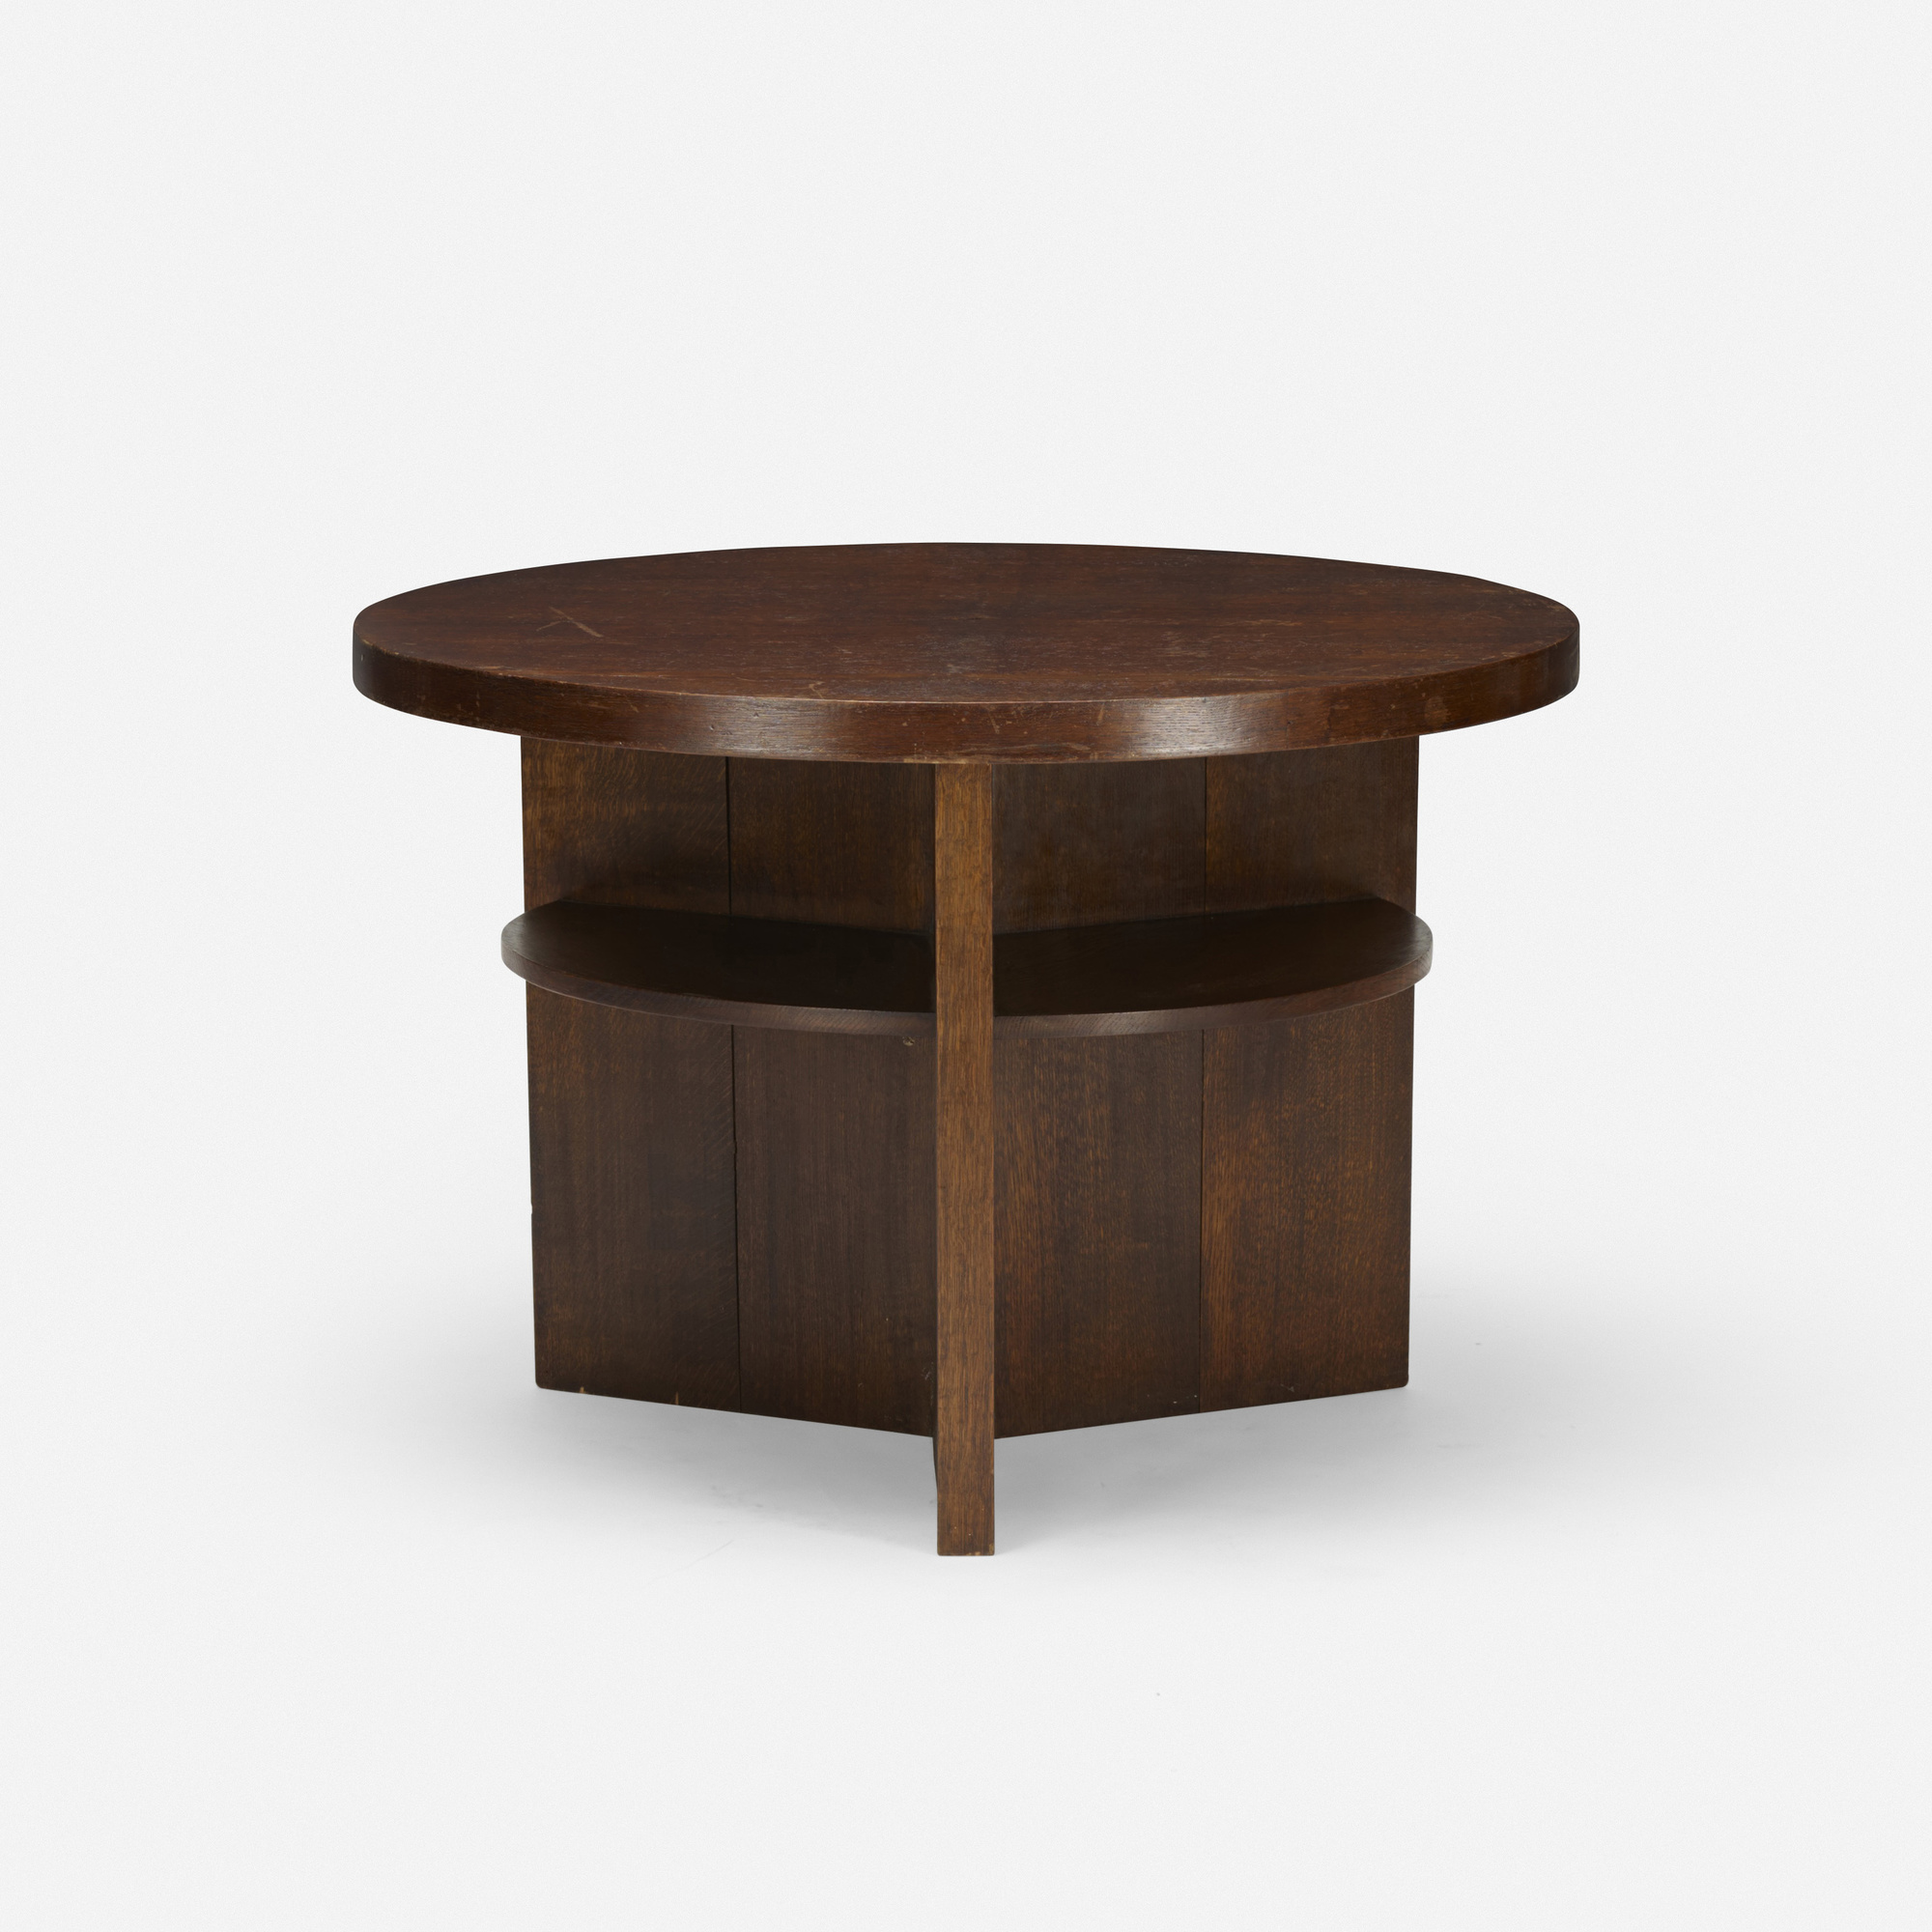 133: Art Deco / occasional table (2 of 3)